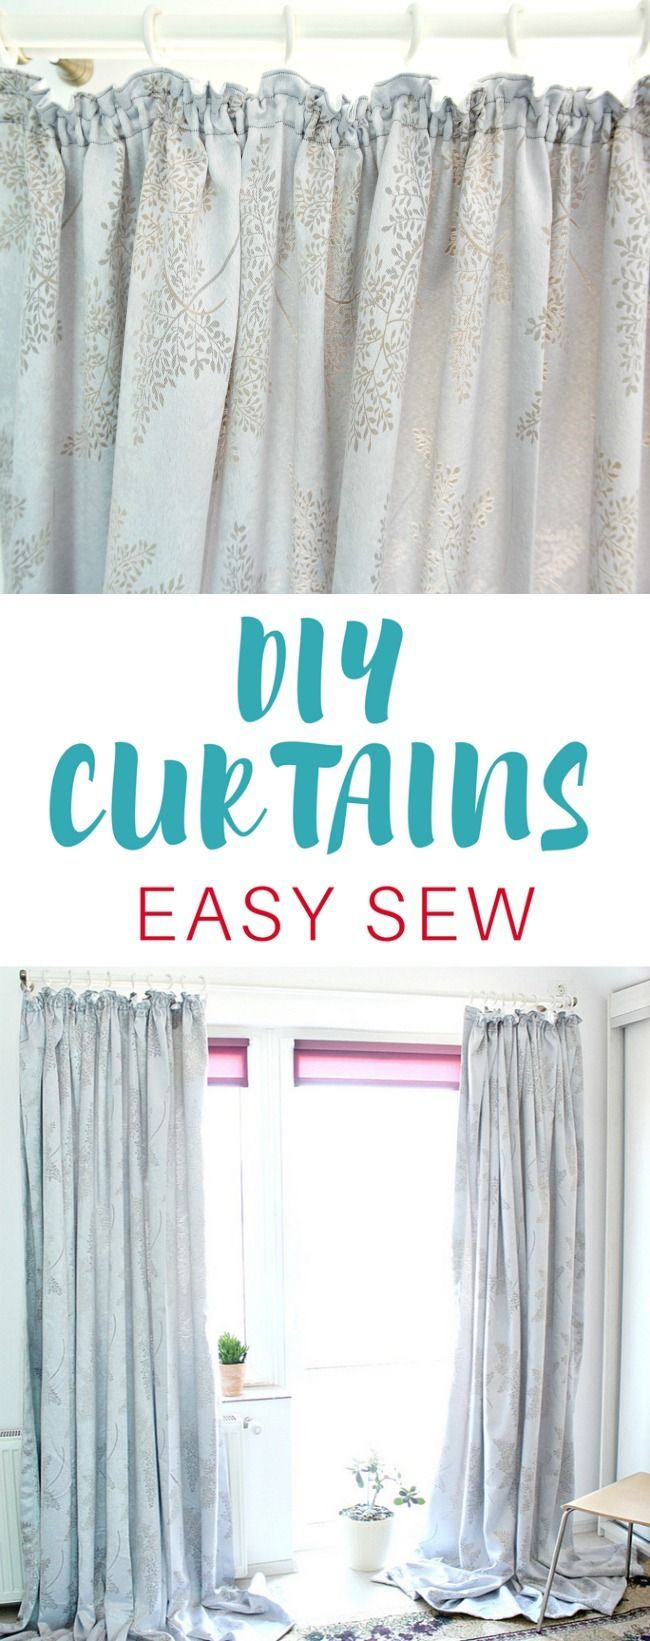 DIY CURTAINS EASY SEWING TUTORIAL - Having custom made curtains doesn't have to be expensive! Make your own with this easy peasy DIY curtains tutorial! Perfect beginner sewing project!